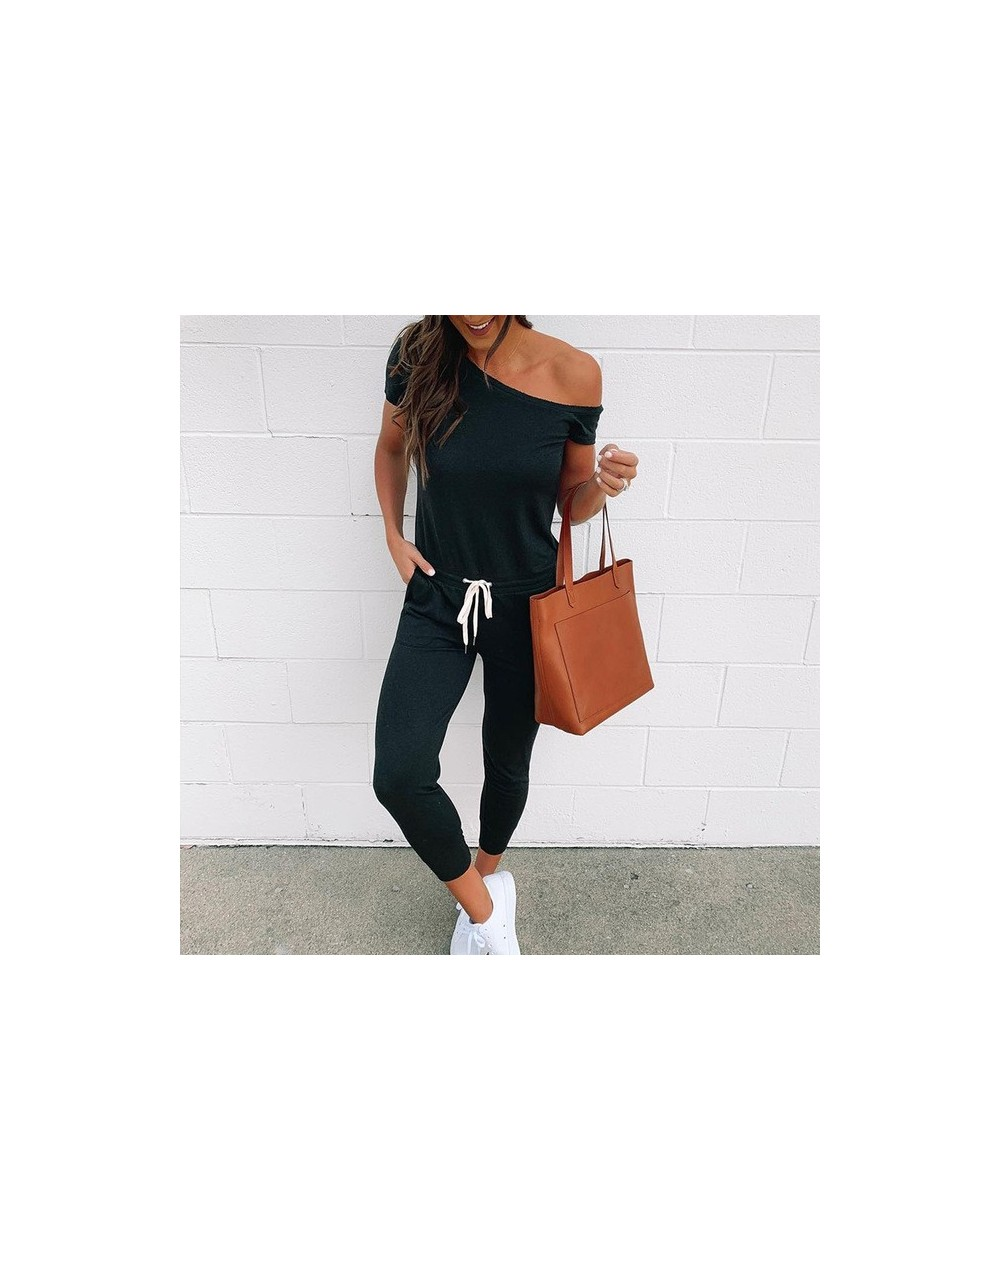 Women's Off Shoulder Jumpsuit Short Sleeve Overalls Lace Up Black Solid Ankle Length Jumpsuits Women 2019 Summer Casual Romp...